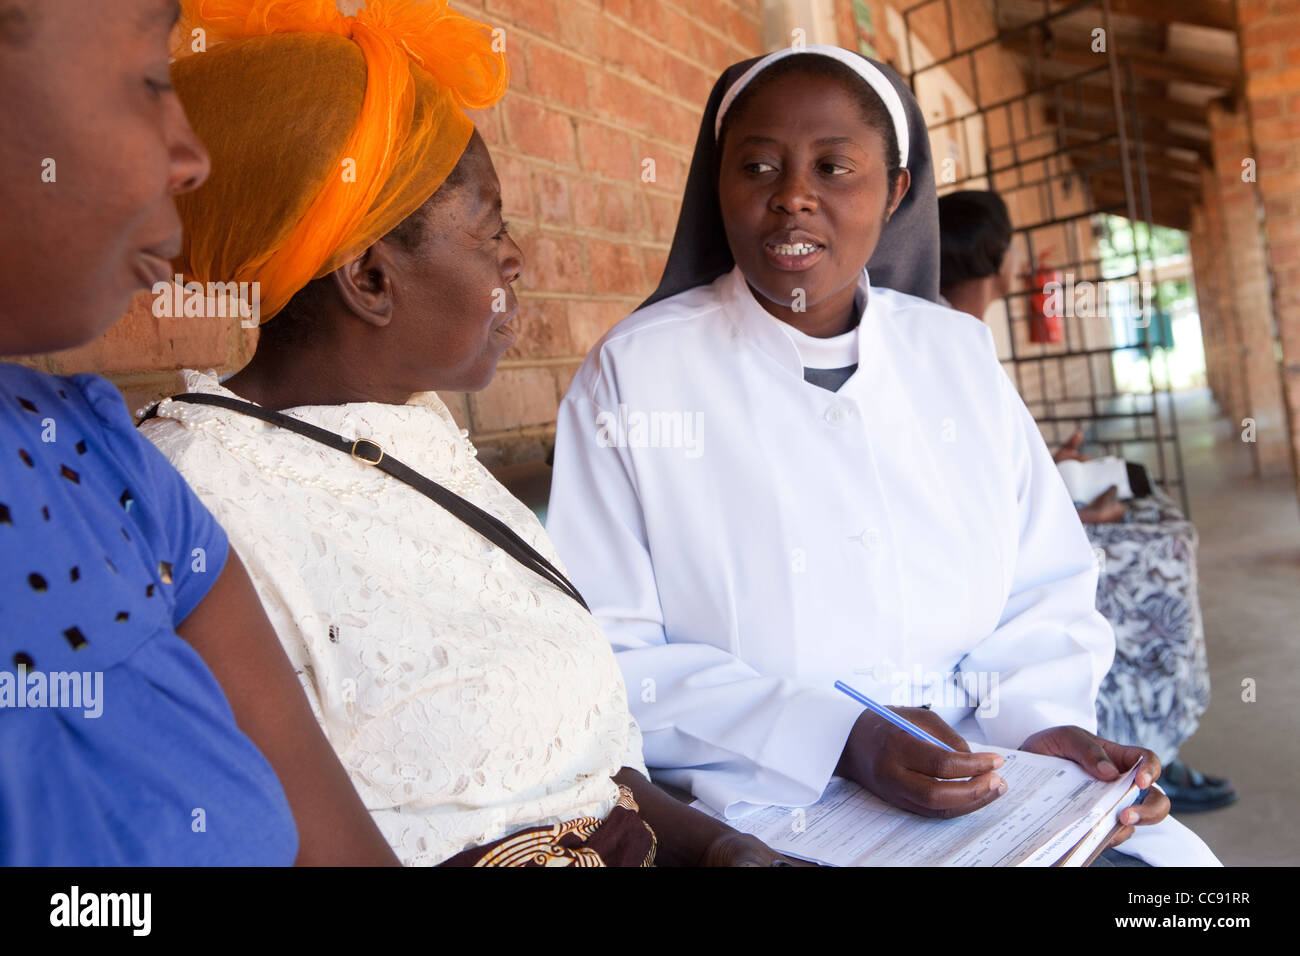 A health care professional consults with patients at a Roman Catholic hospital in Ibenga, Zambia, Southern Africa. - Stock Image